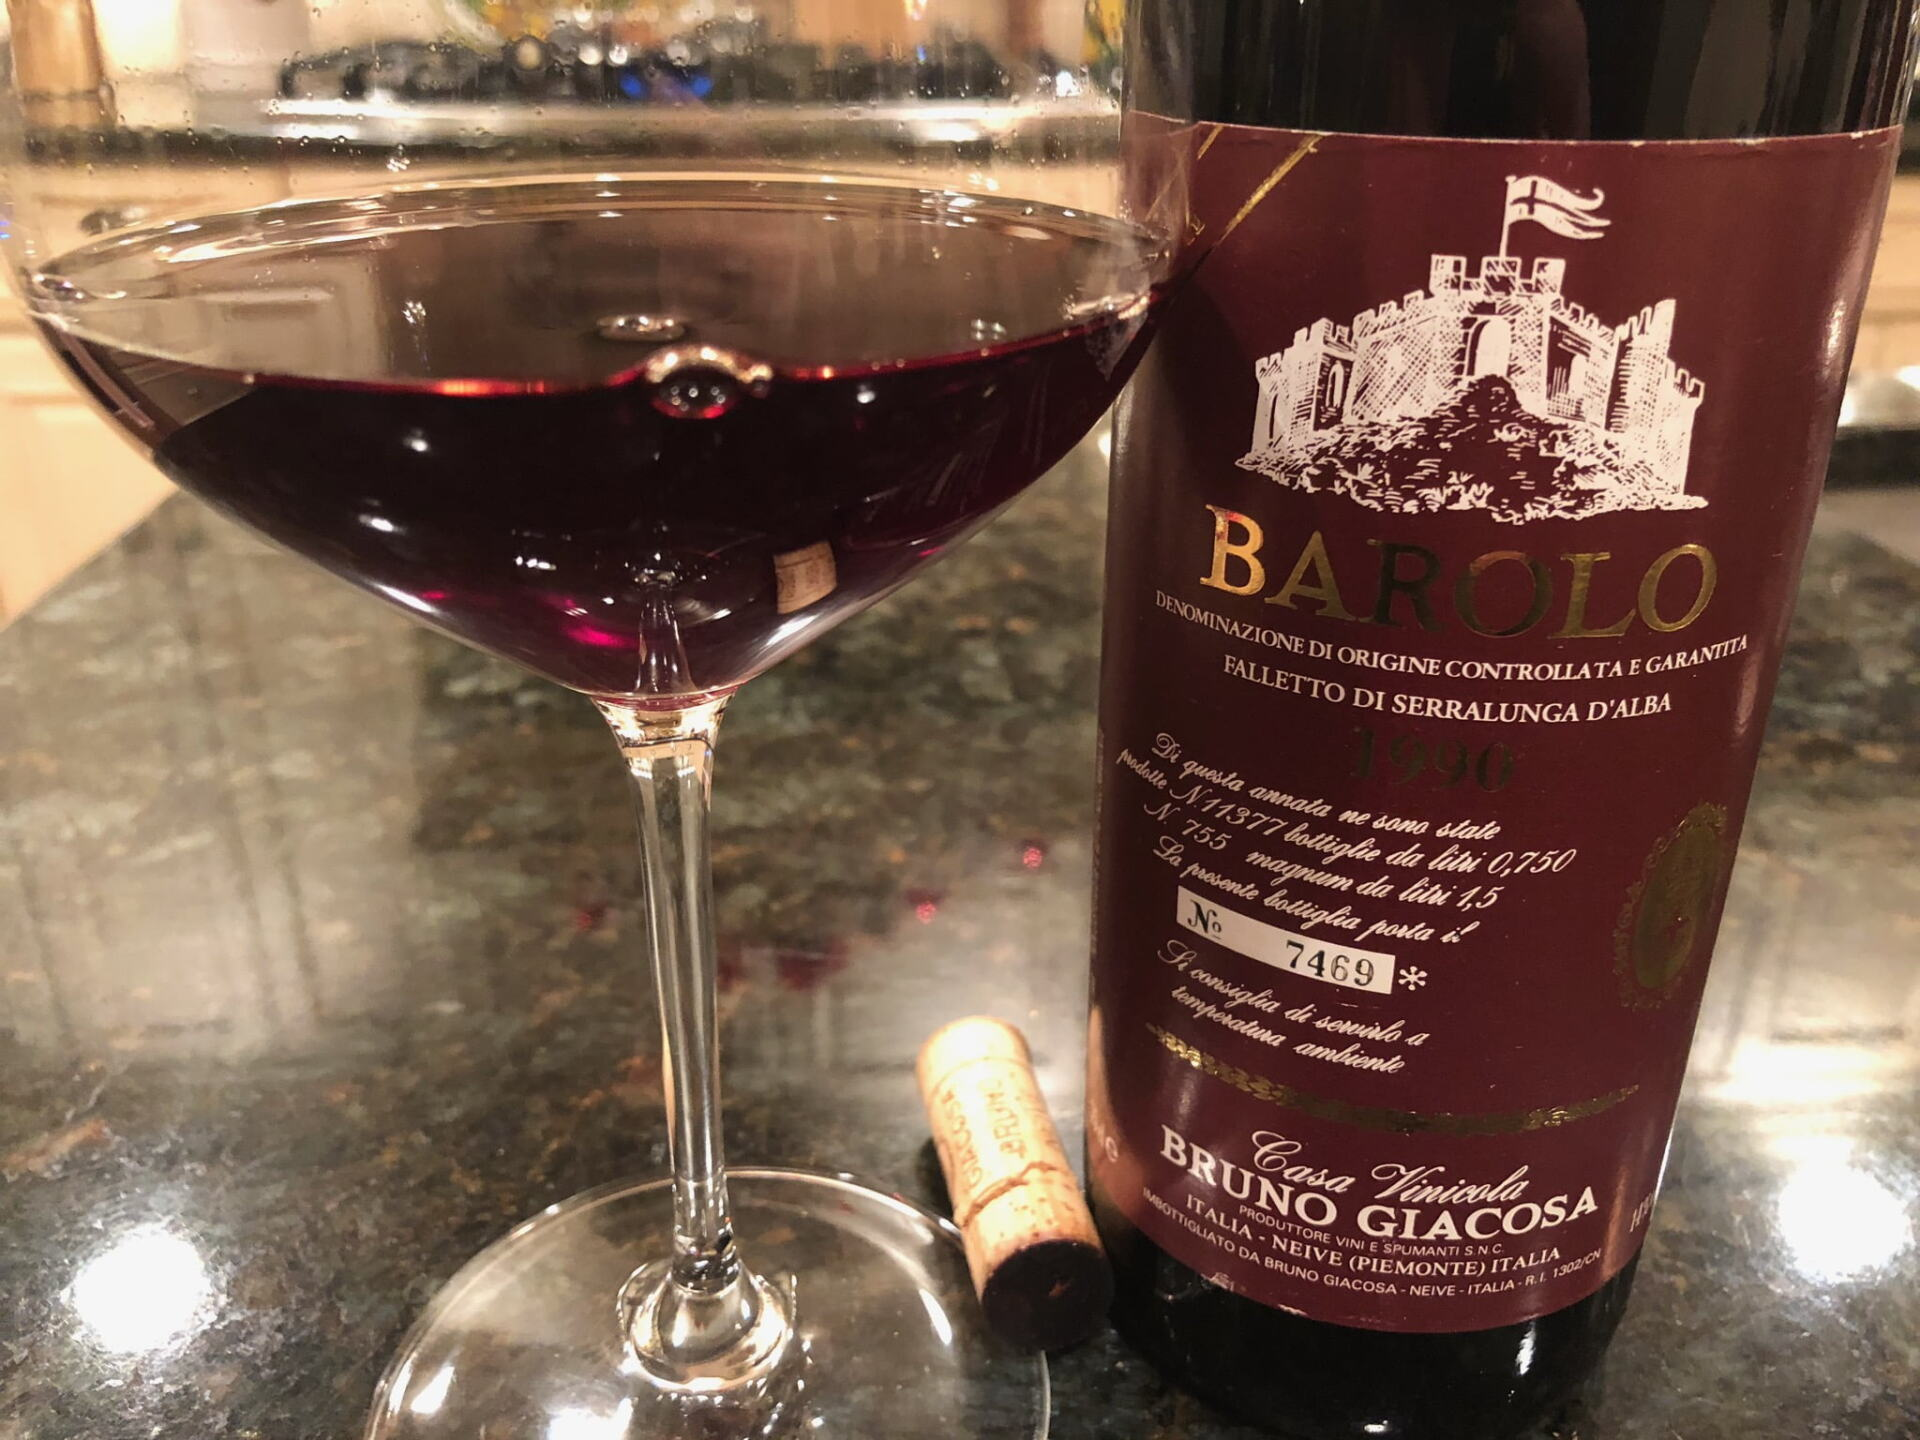 Bottle of Barolo wine and wine glass